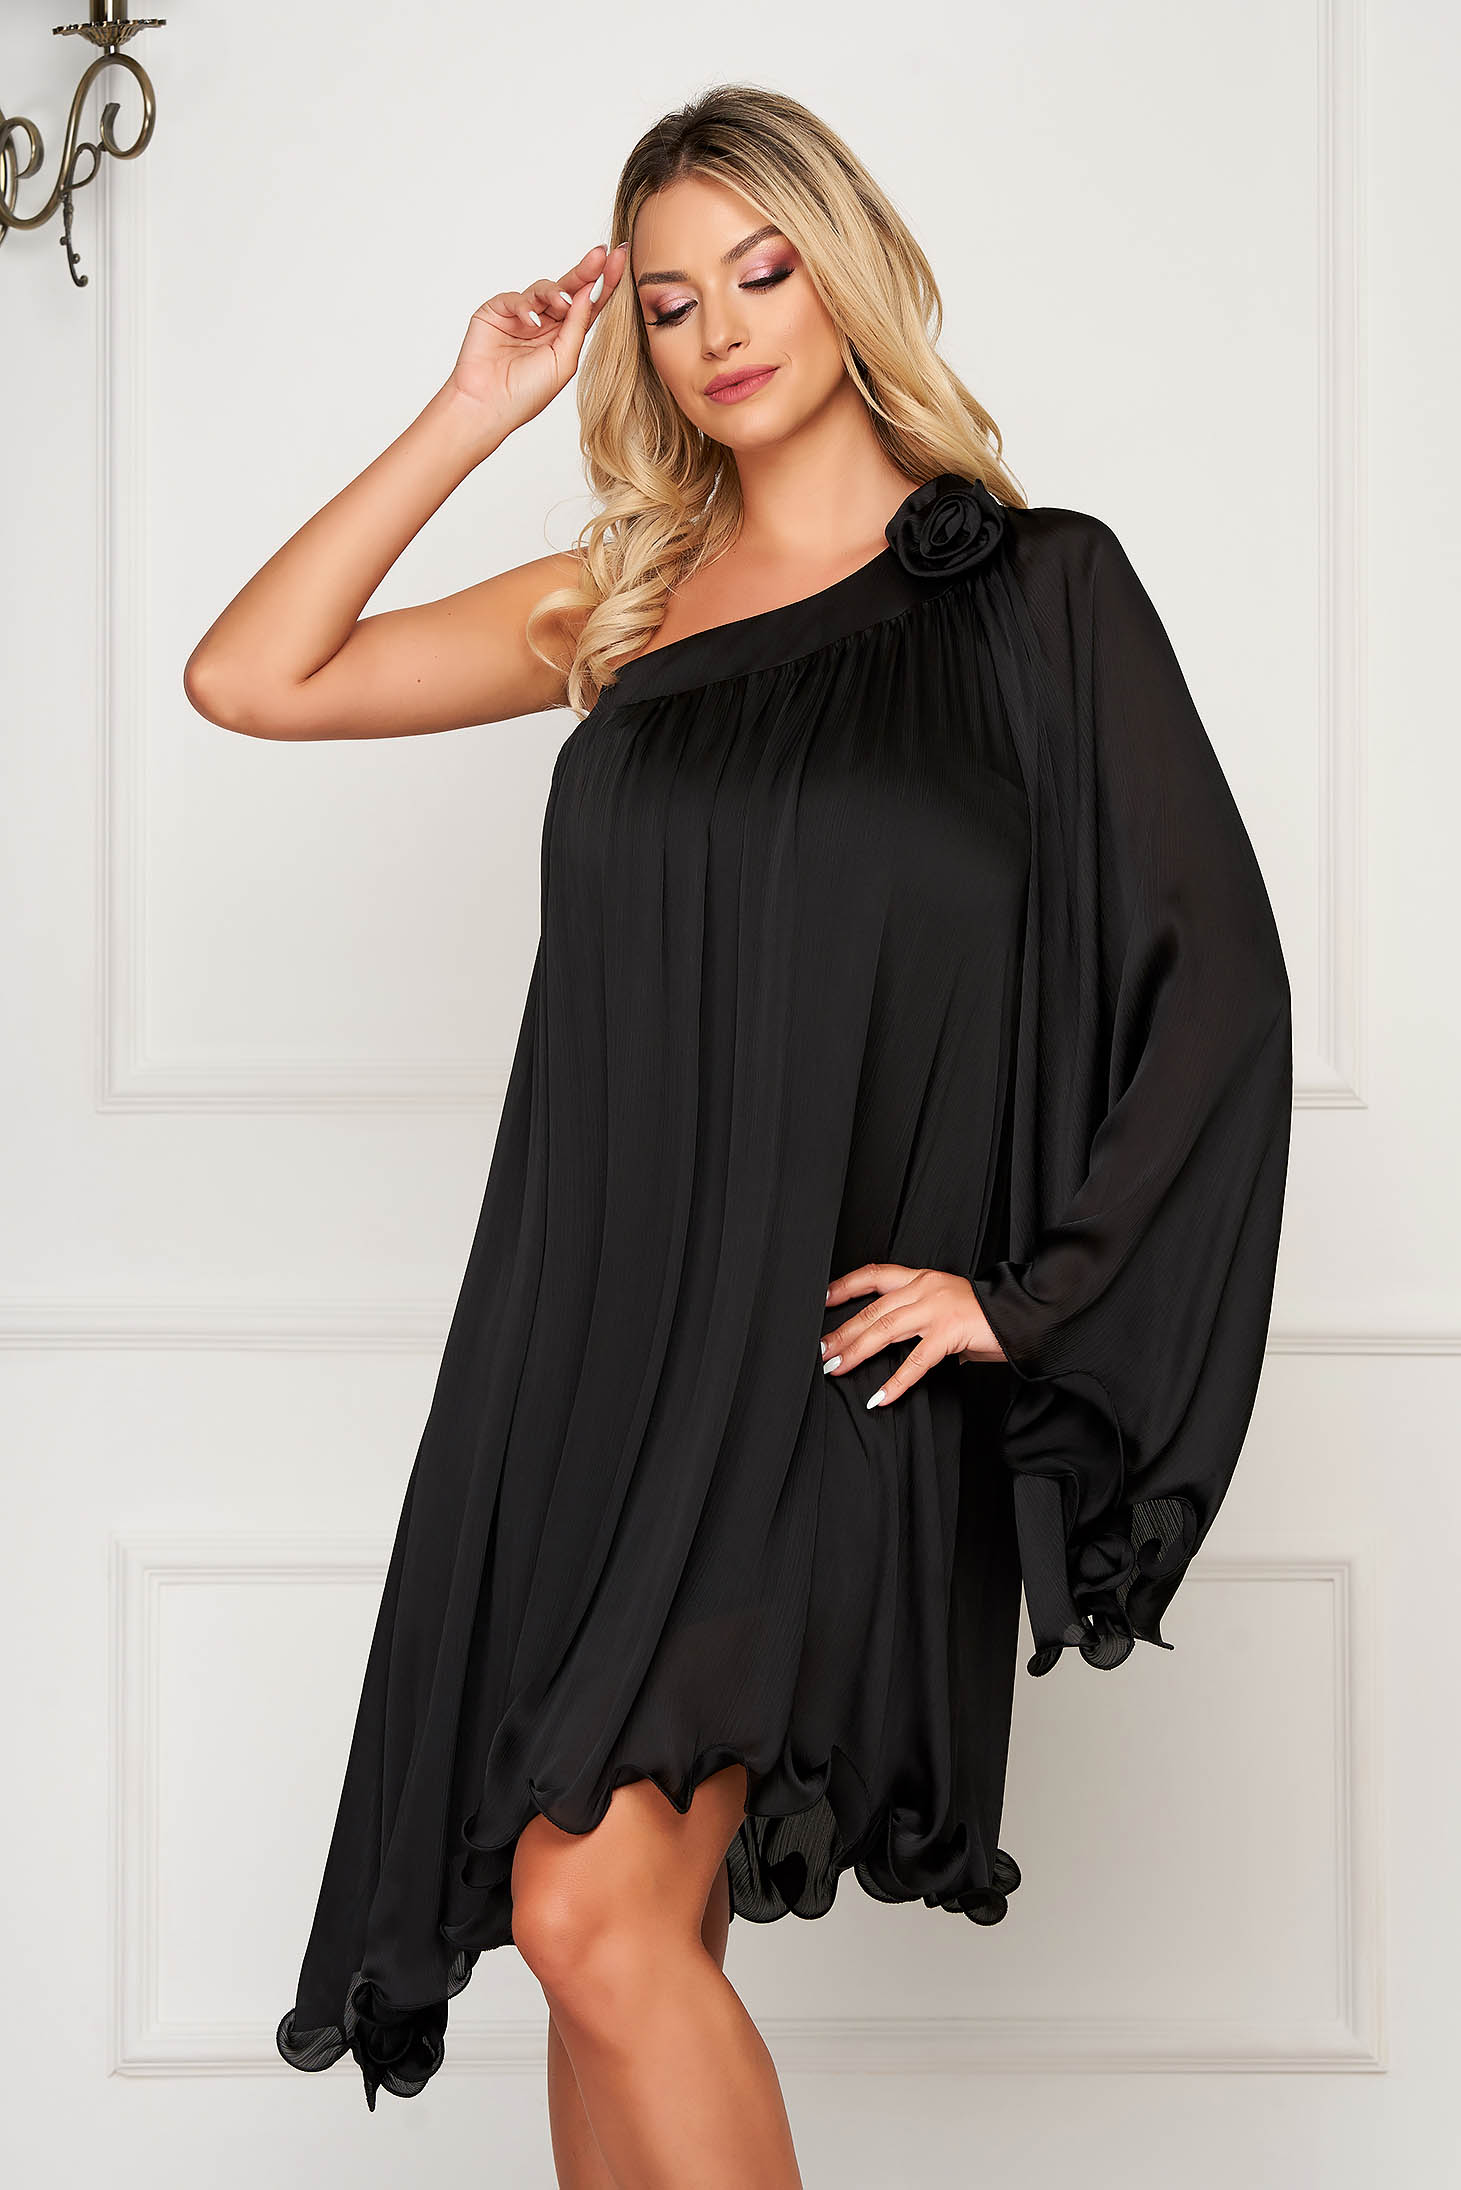 Dress black occasional asymmetrical flared from satin fabric texture